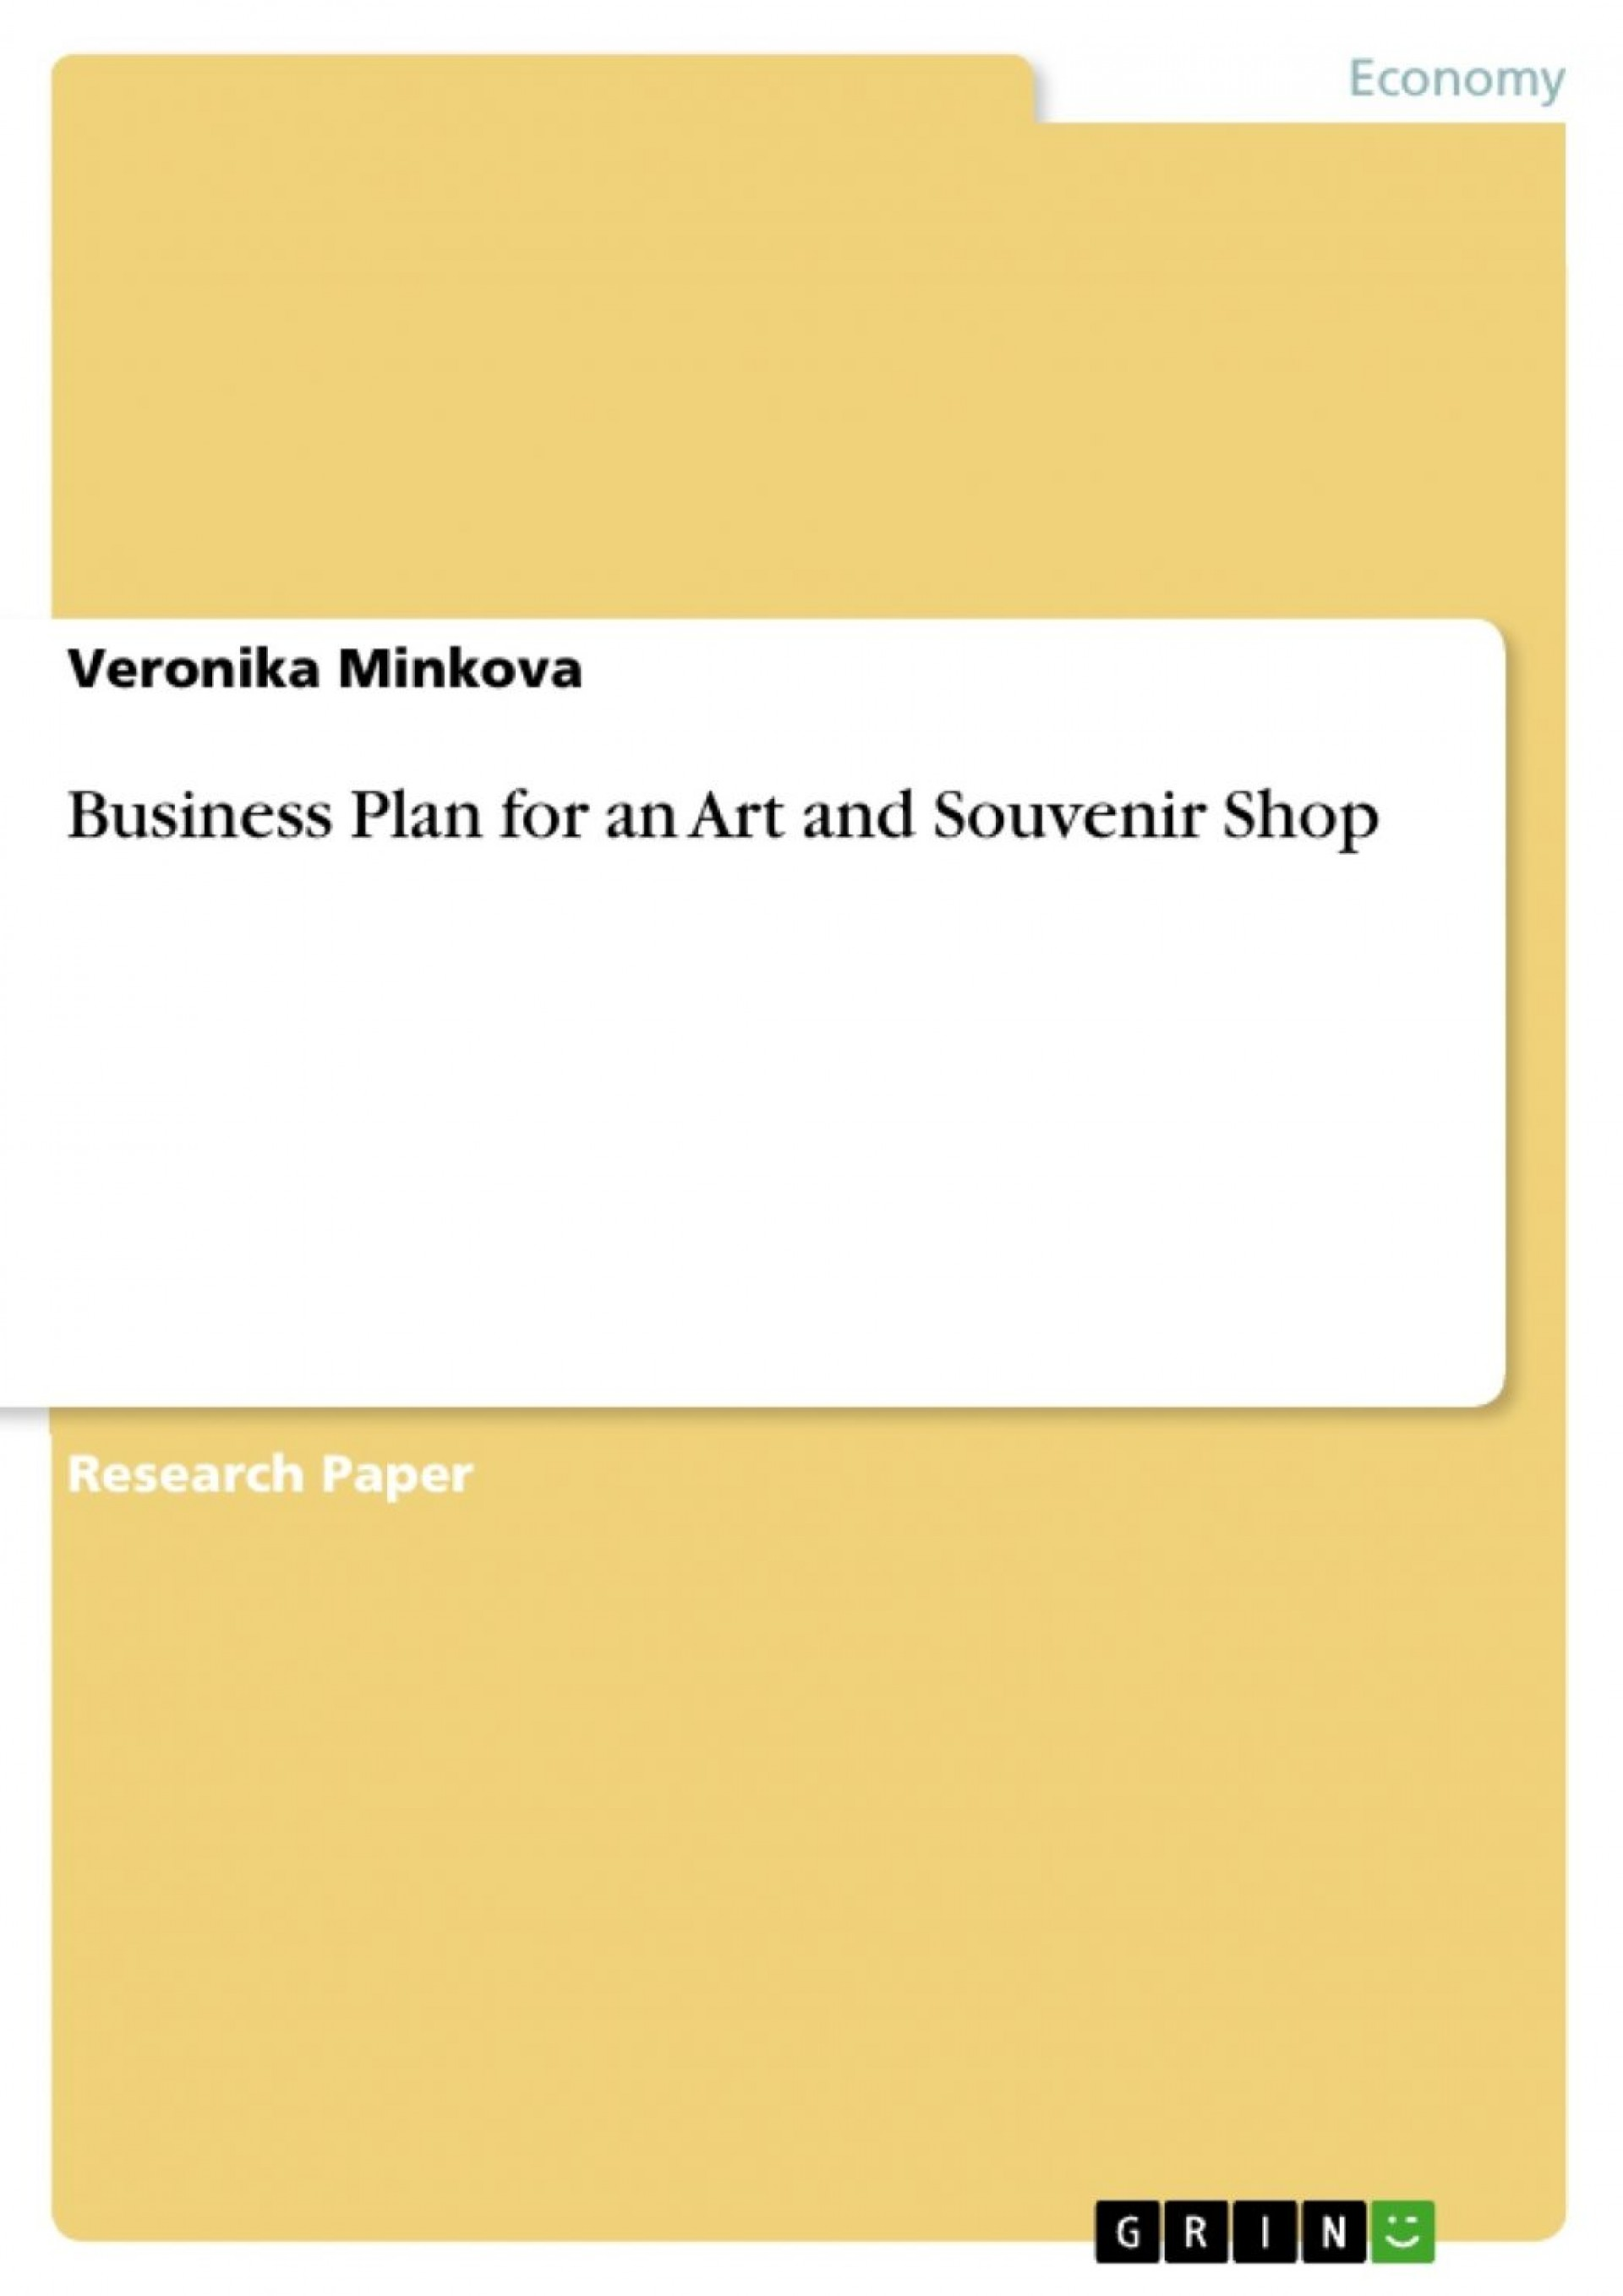 012 Sphere With The Word Business Plan On White Background Stock Online Art Gallery For An And Souvenir Shop Publish Your Masters Pdf Example Fin Ppt Contemporary Free Template Research Fantastic Paper Check Plagiarism Of 1920